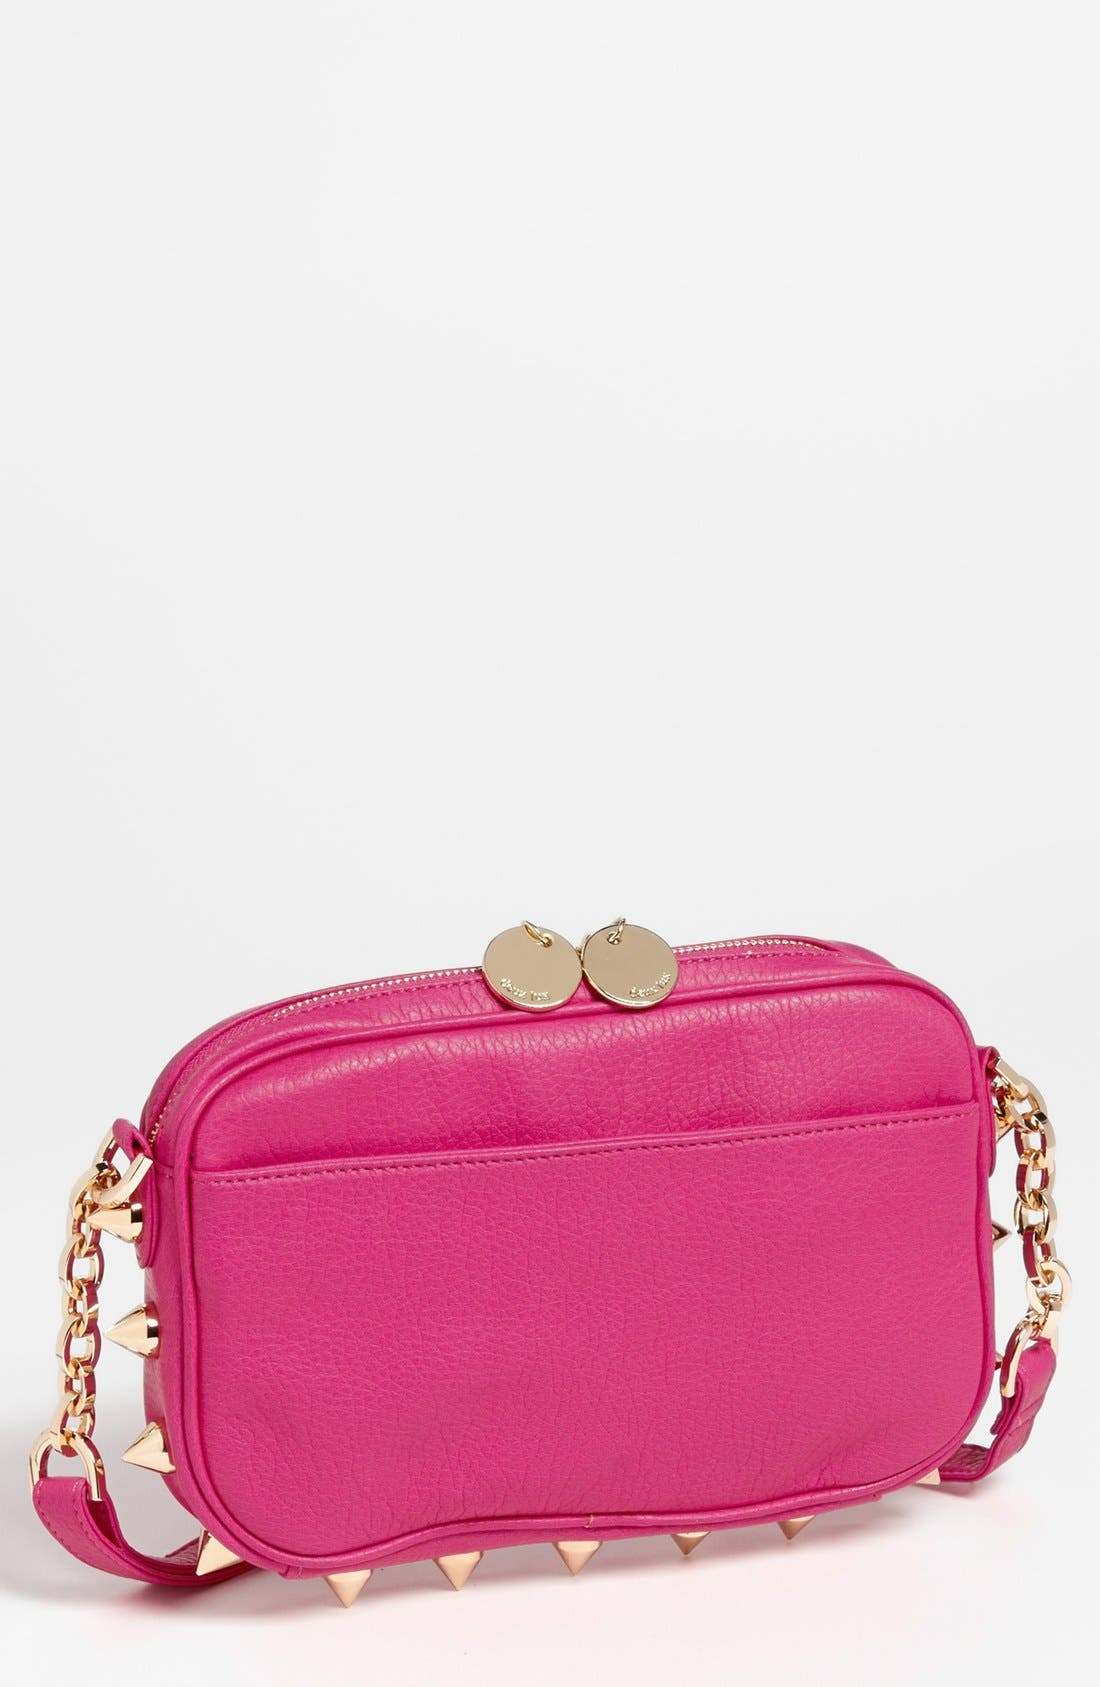 Main Image - Deux Lux 'Empire State' Faux Leather Crossbody Bag